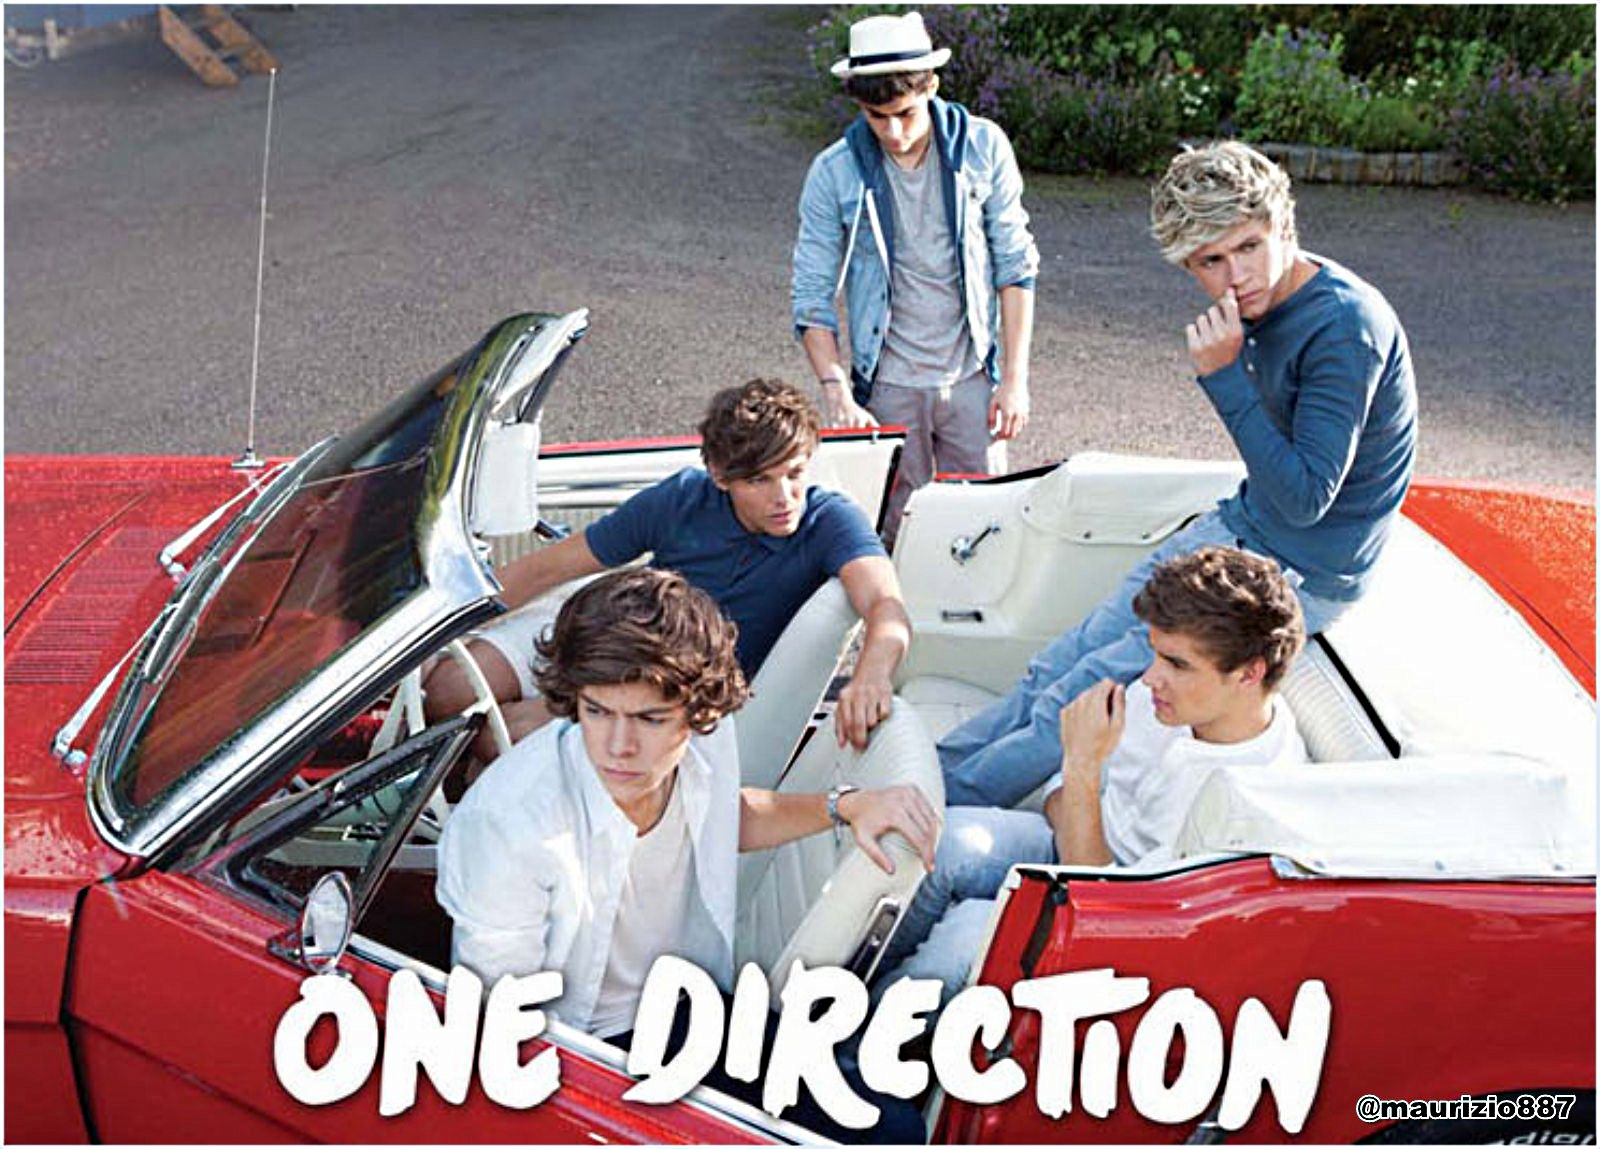 One Direction: Where We Are - The Concert Film (2014) - IMDb